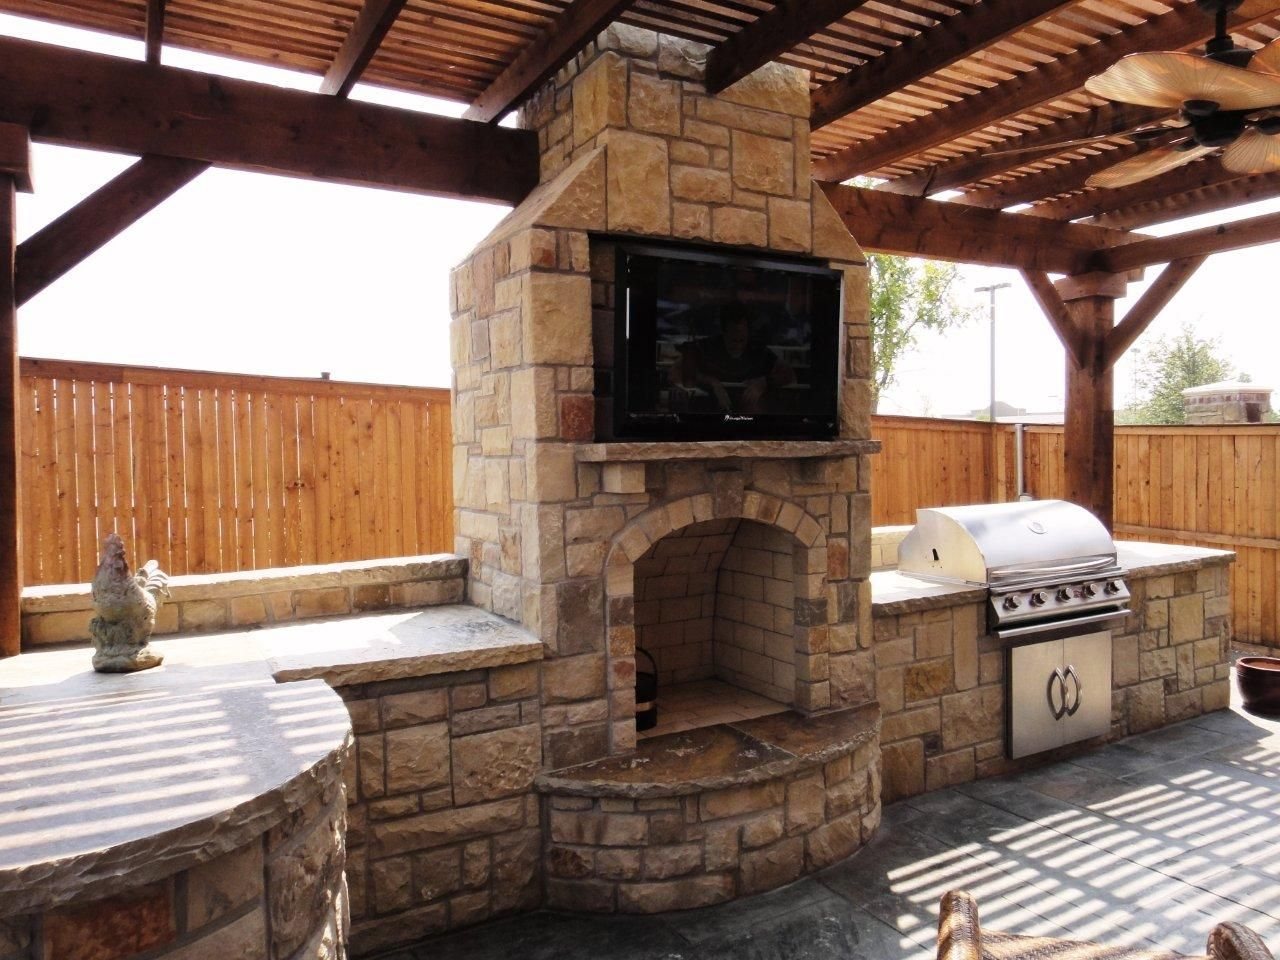 outdoor kitchen fireplaces in dallas frisco plano dallas outdoor kitchens outdoor on e kitchen ideas id=51534